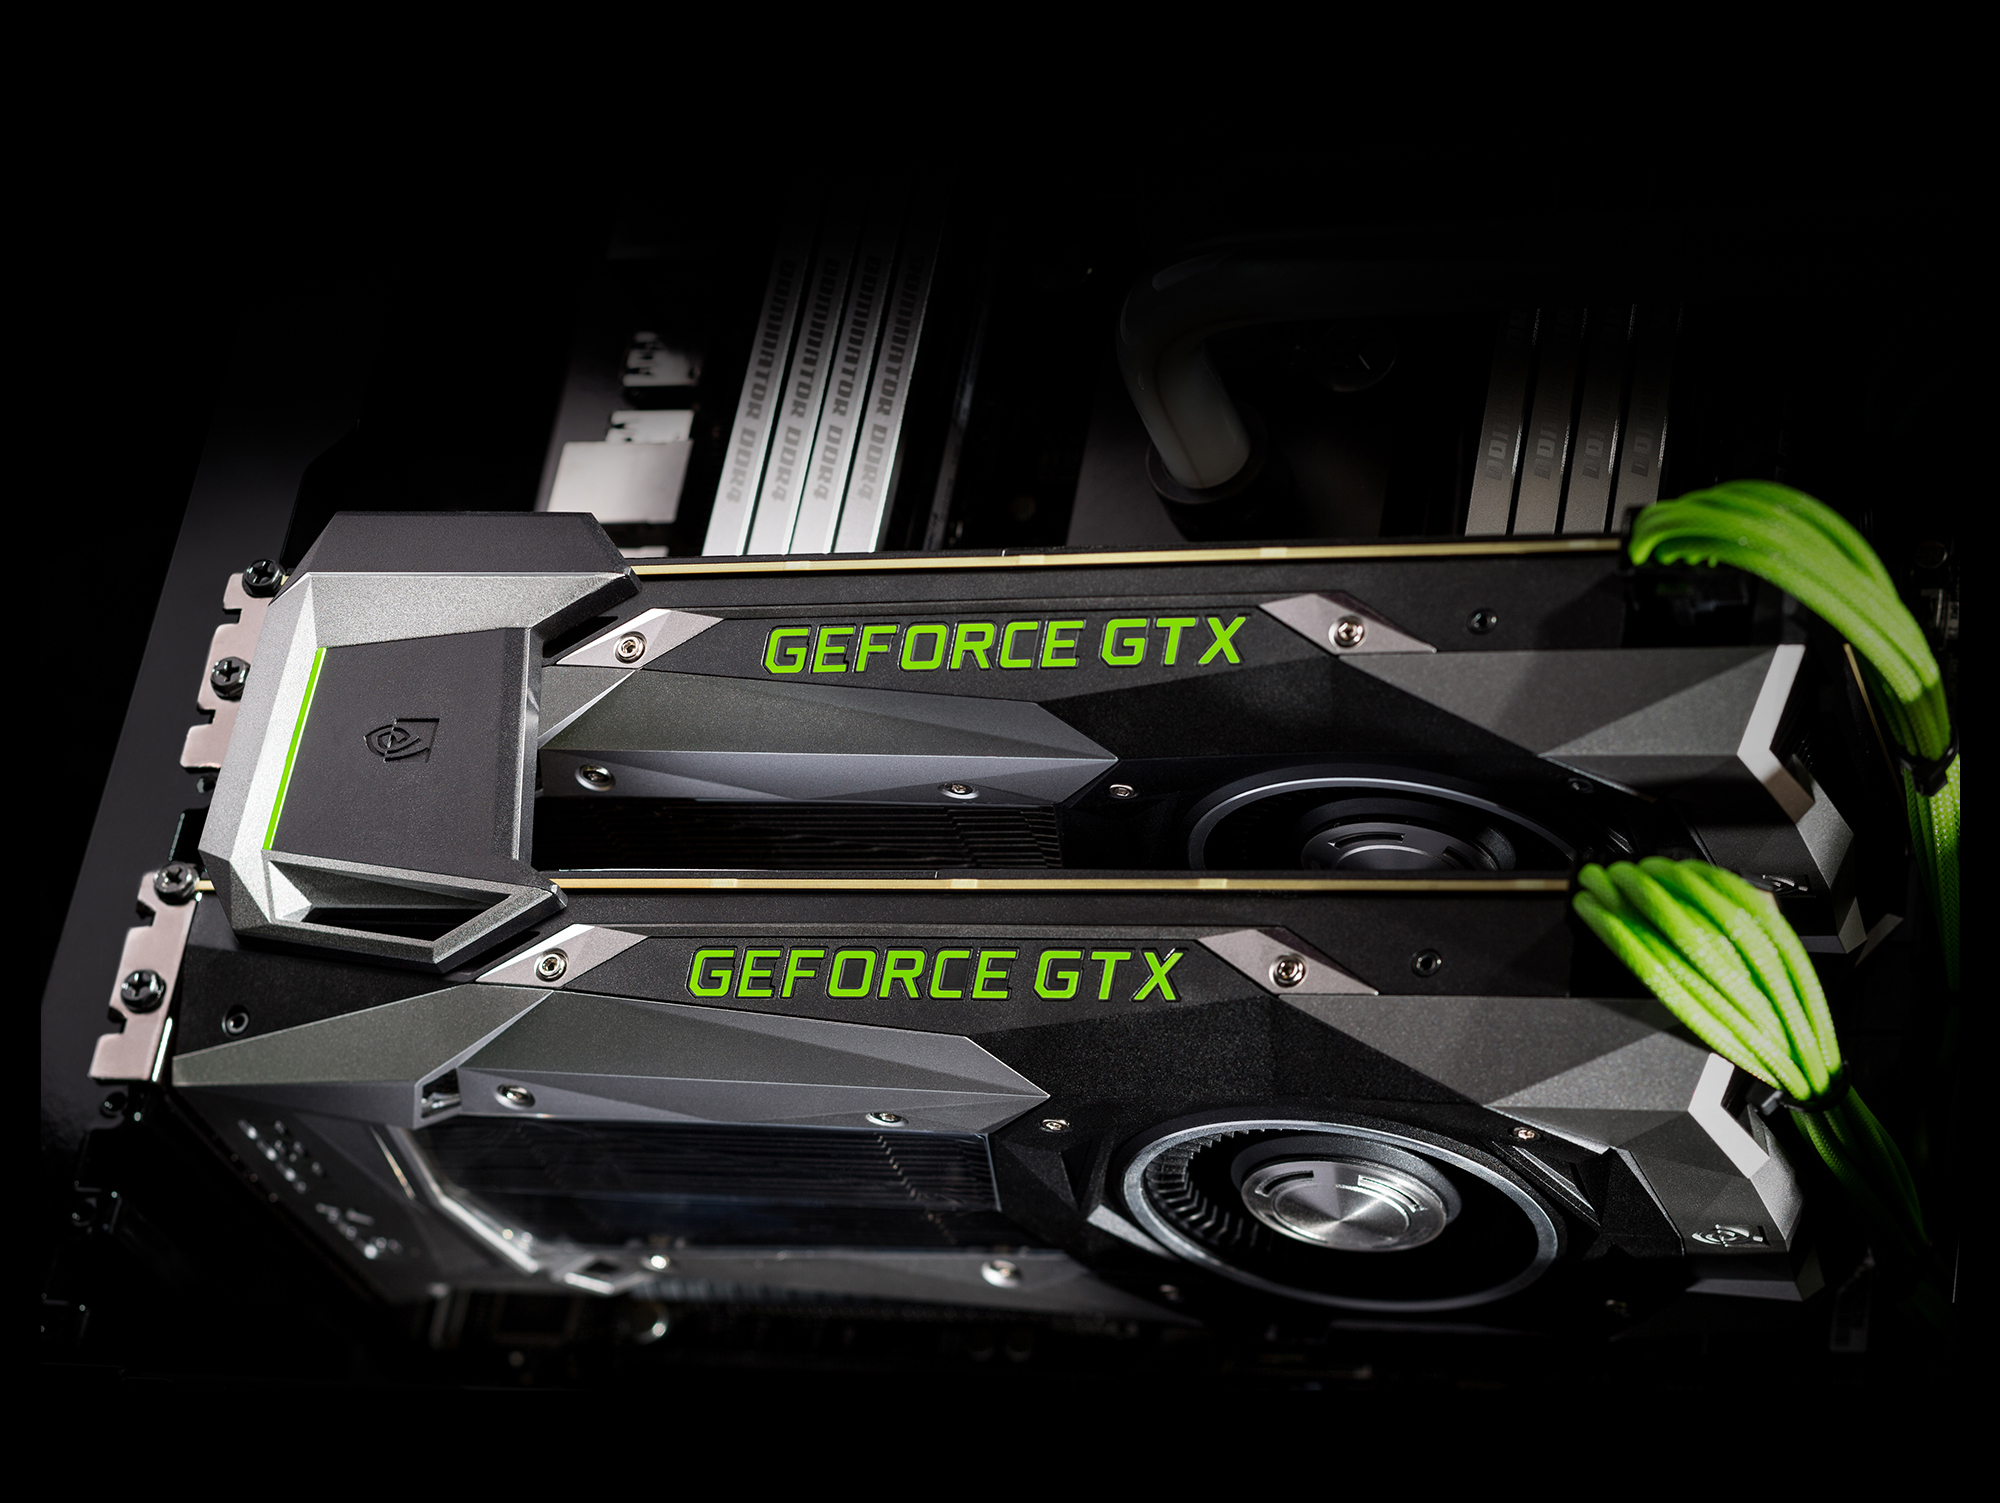 Introducing The GeForce GTX 1080: Gaming Perfected